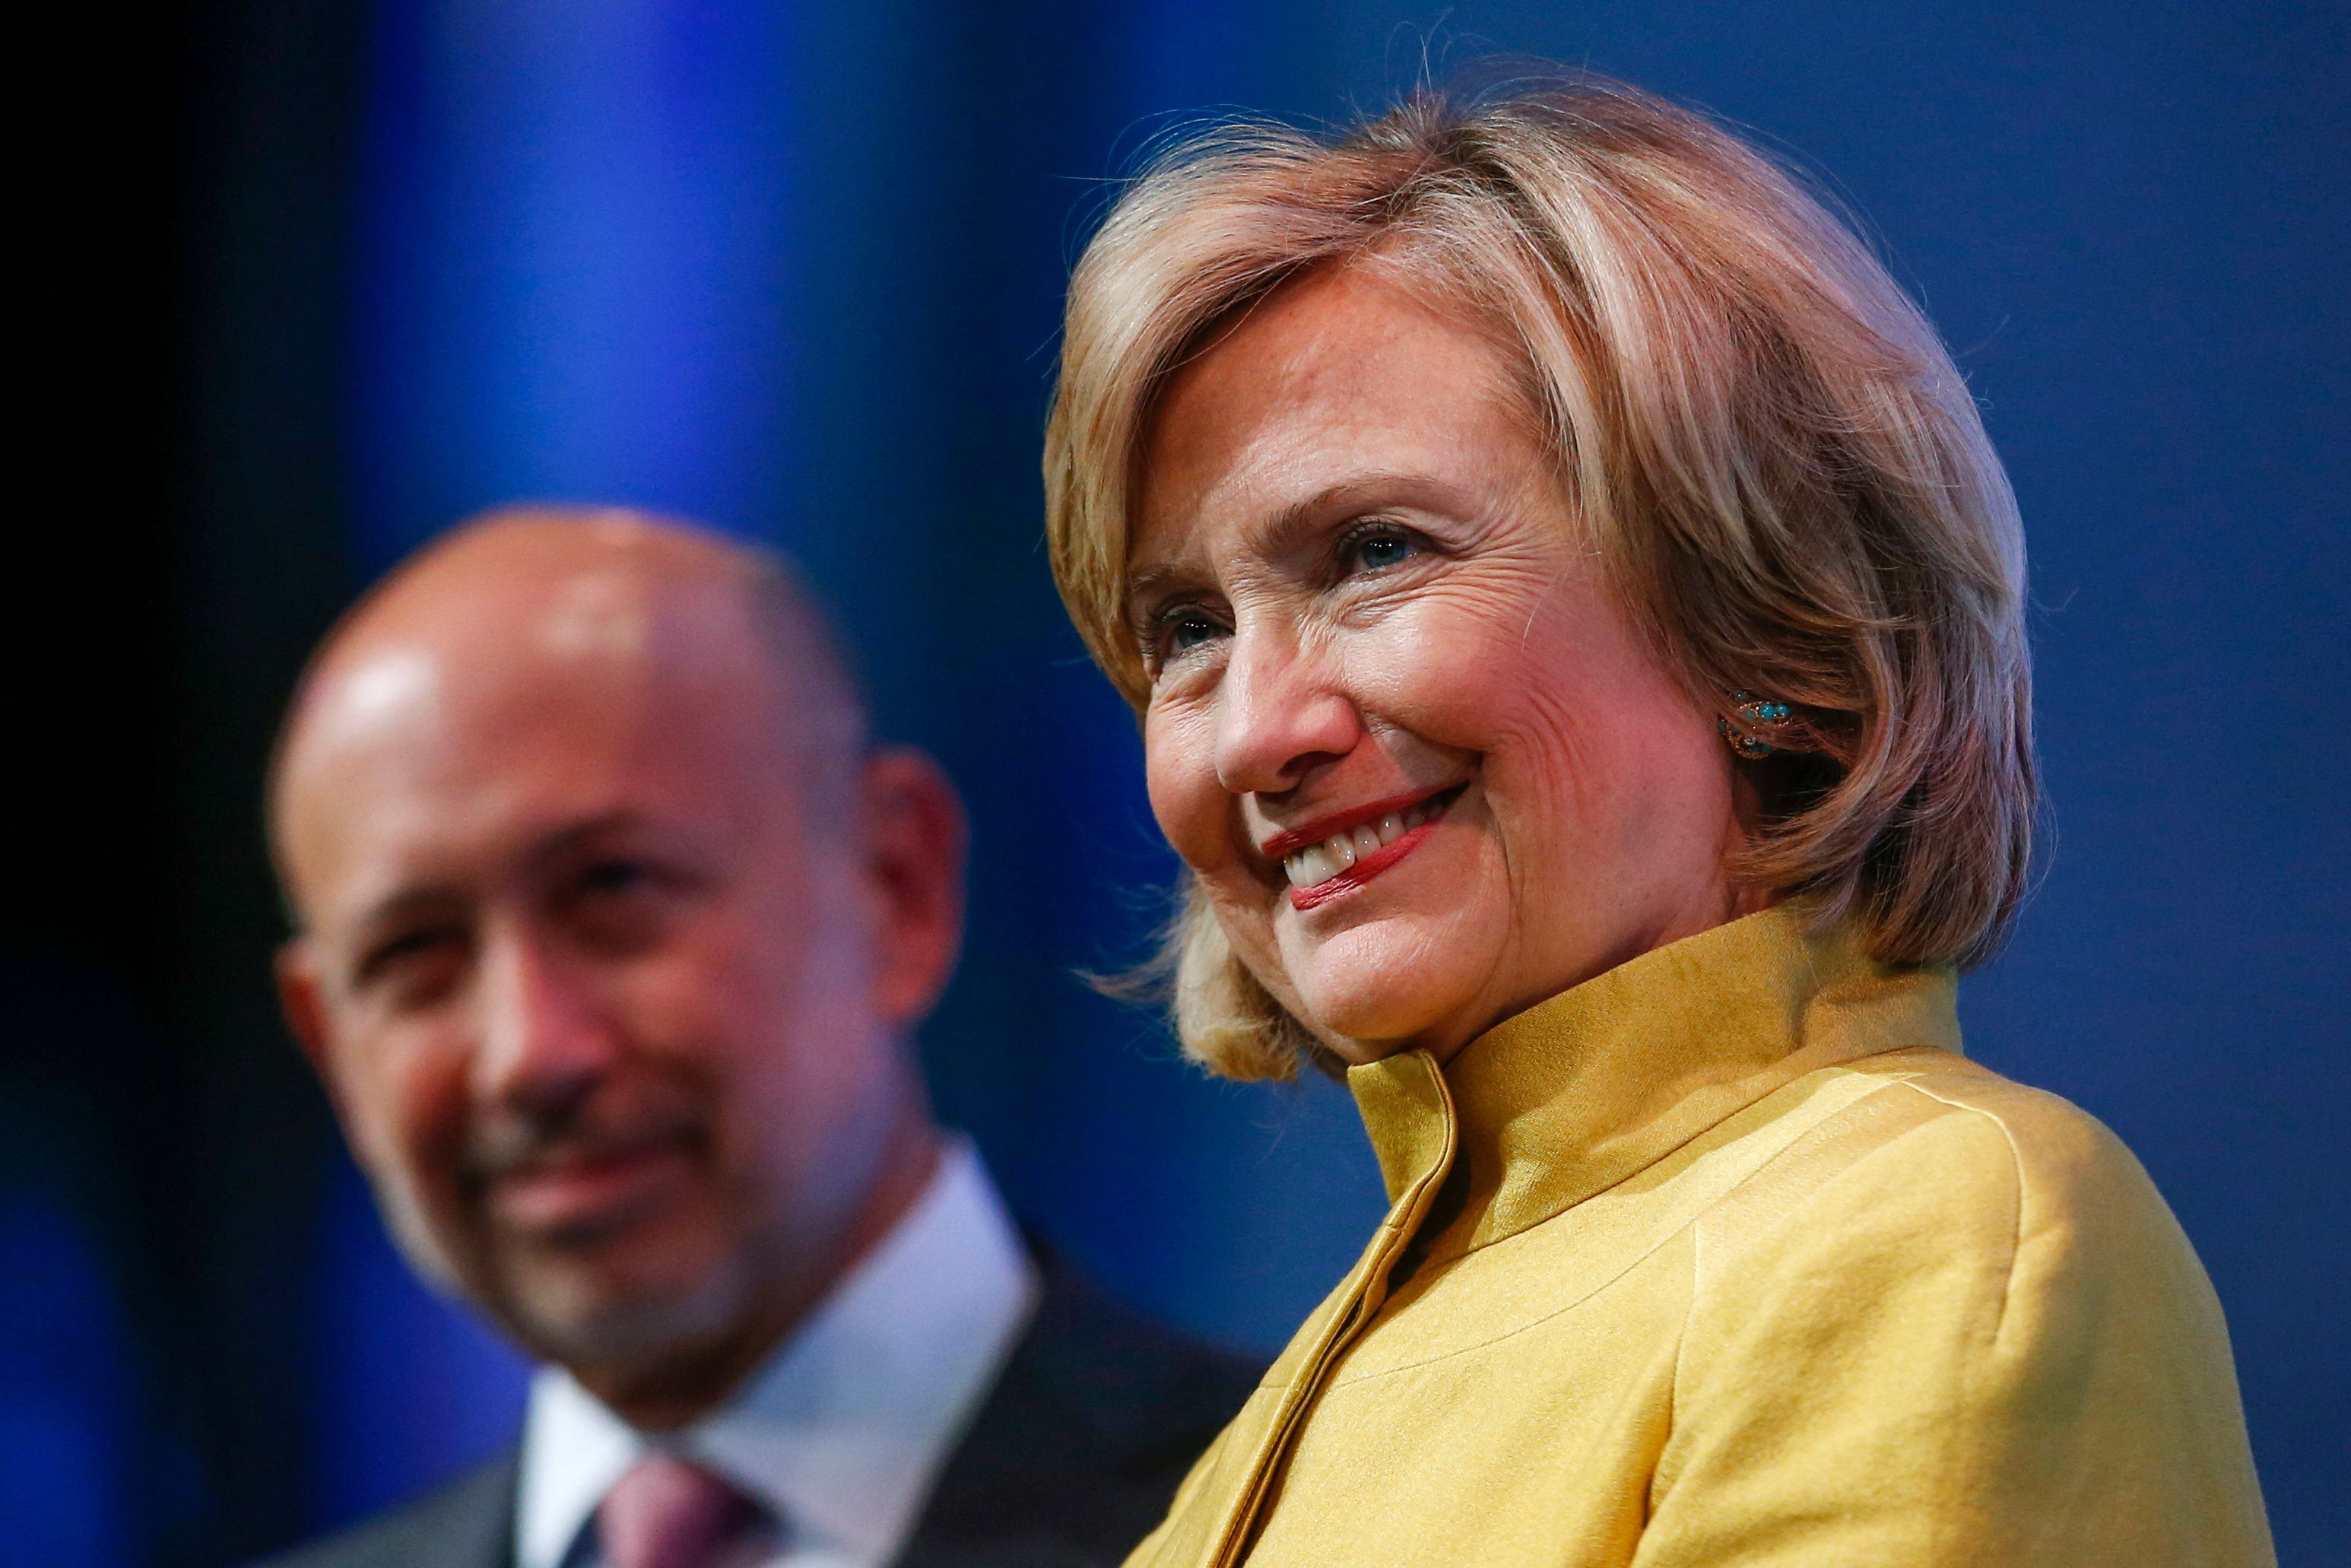 "Former U.S. Secretary of State Hillary Clinton and Goldman Sachs Group Inc. Chairman and Chief Executive Officer Lloyd Blankfein listen to speakers during the plenary session titled ""Equality for Girls and Women: 2034 Instead of 2134?"" at the Clinton Global Initiative 2014 (CGI) in New York, September 24, 2014. The CGI was created by former U.S. President Bill Clinton in 2005 to gather global leaders to discuss solutions to the world's problems. REUTERS/Shannon Stapleton (UNITED STATES - Tags: POLITICS BUSINESS SOCIETY)"